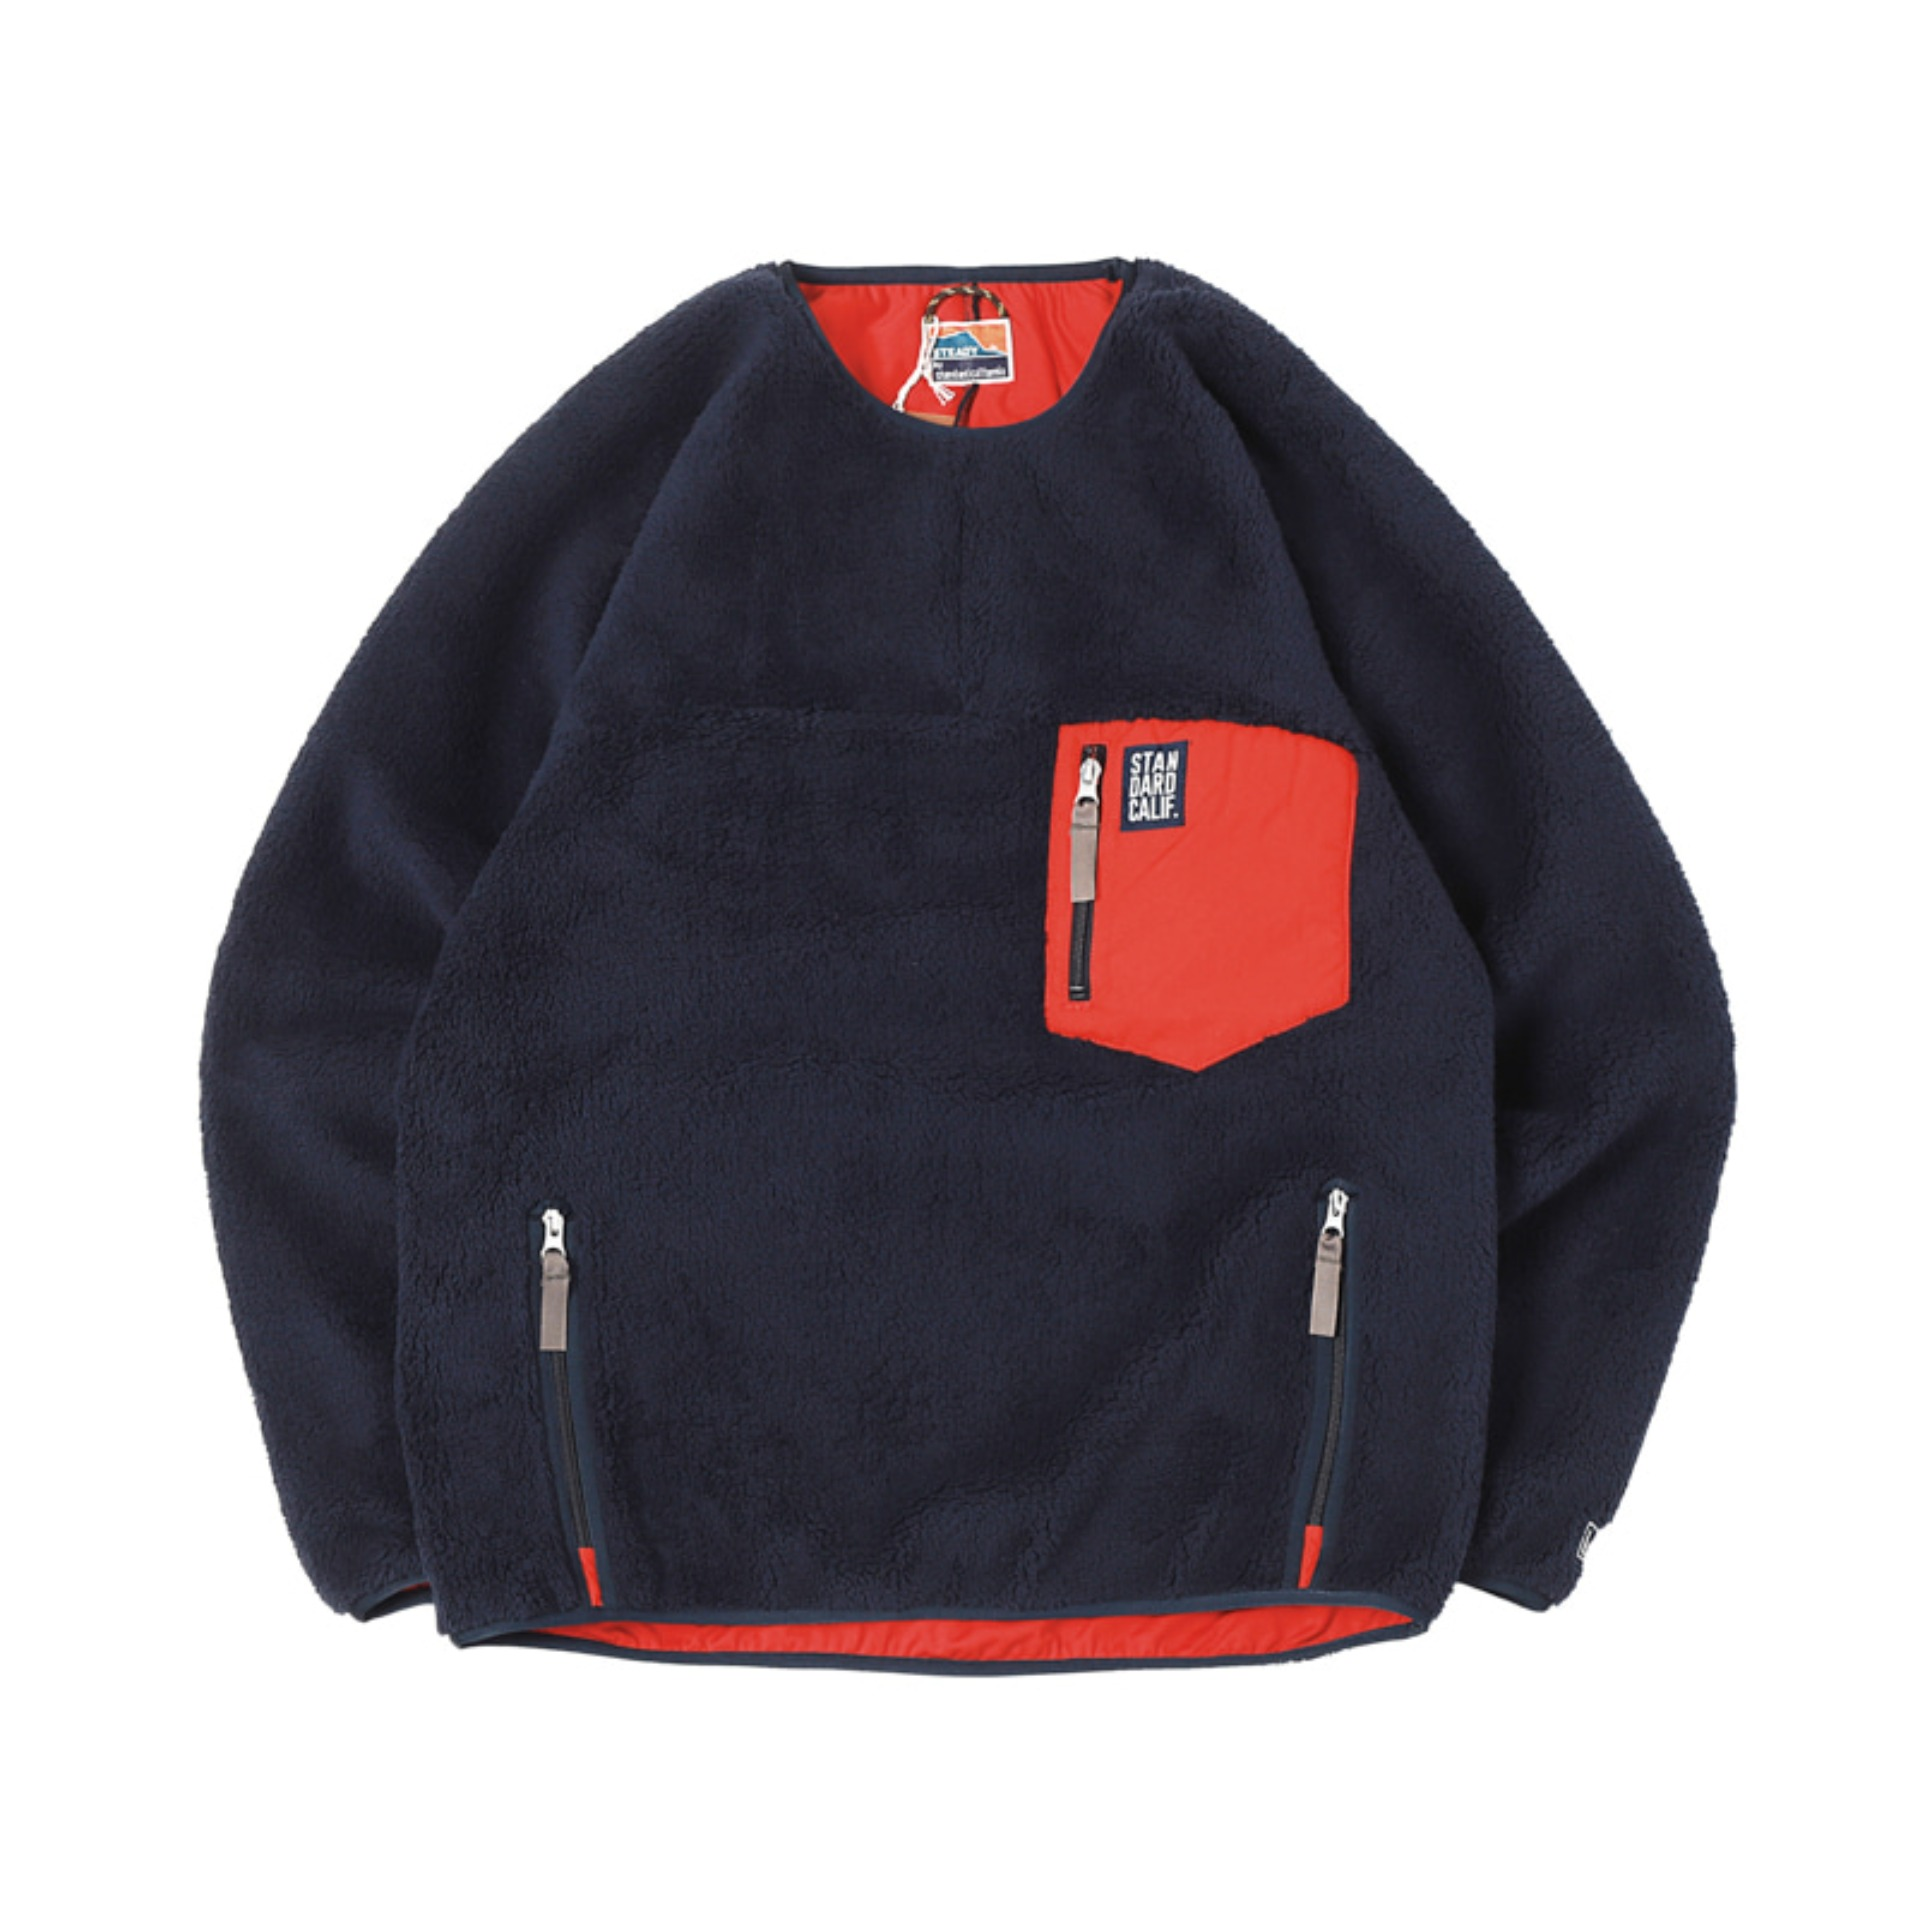 SD Classic Pile Pullover / DLS L + 2  (Navy)